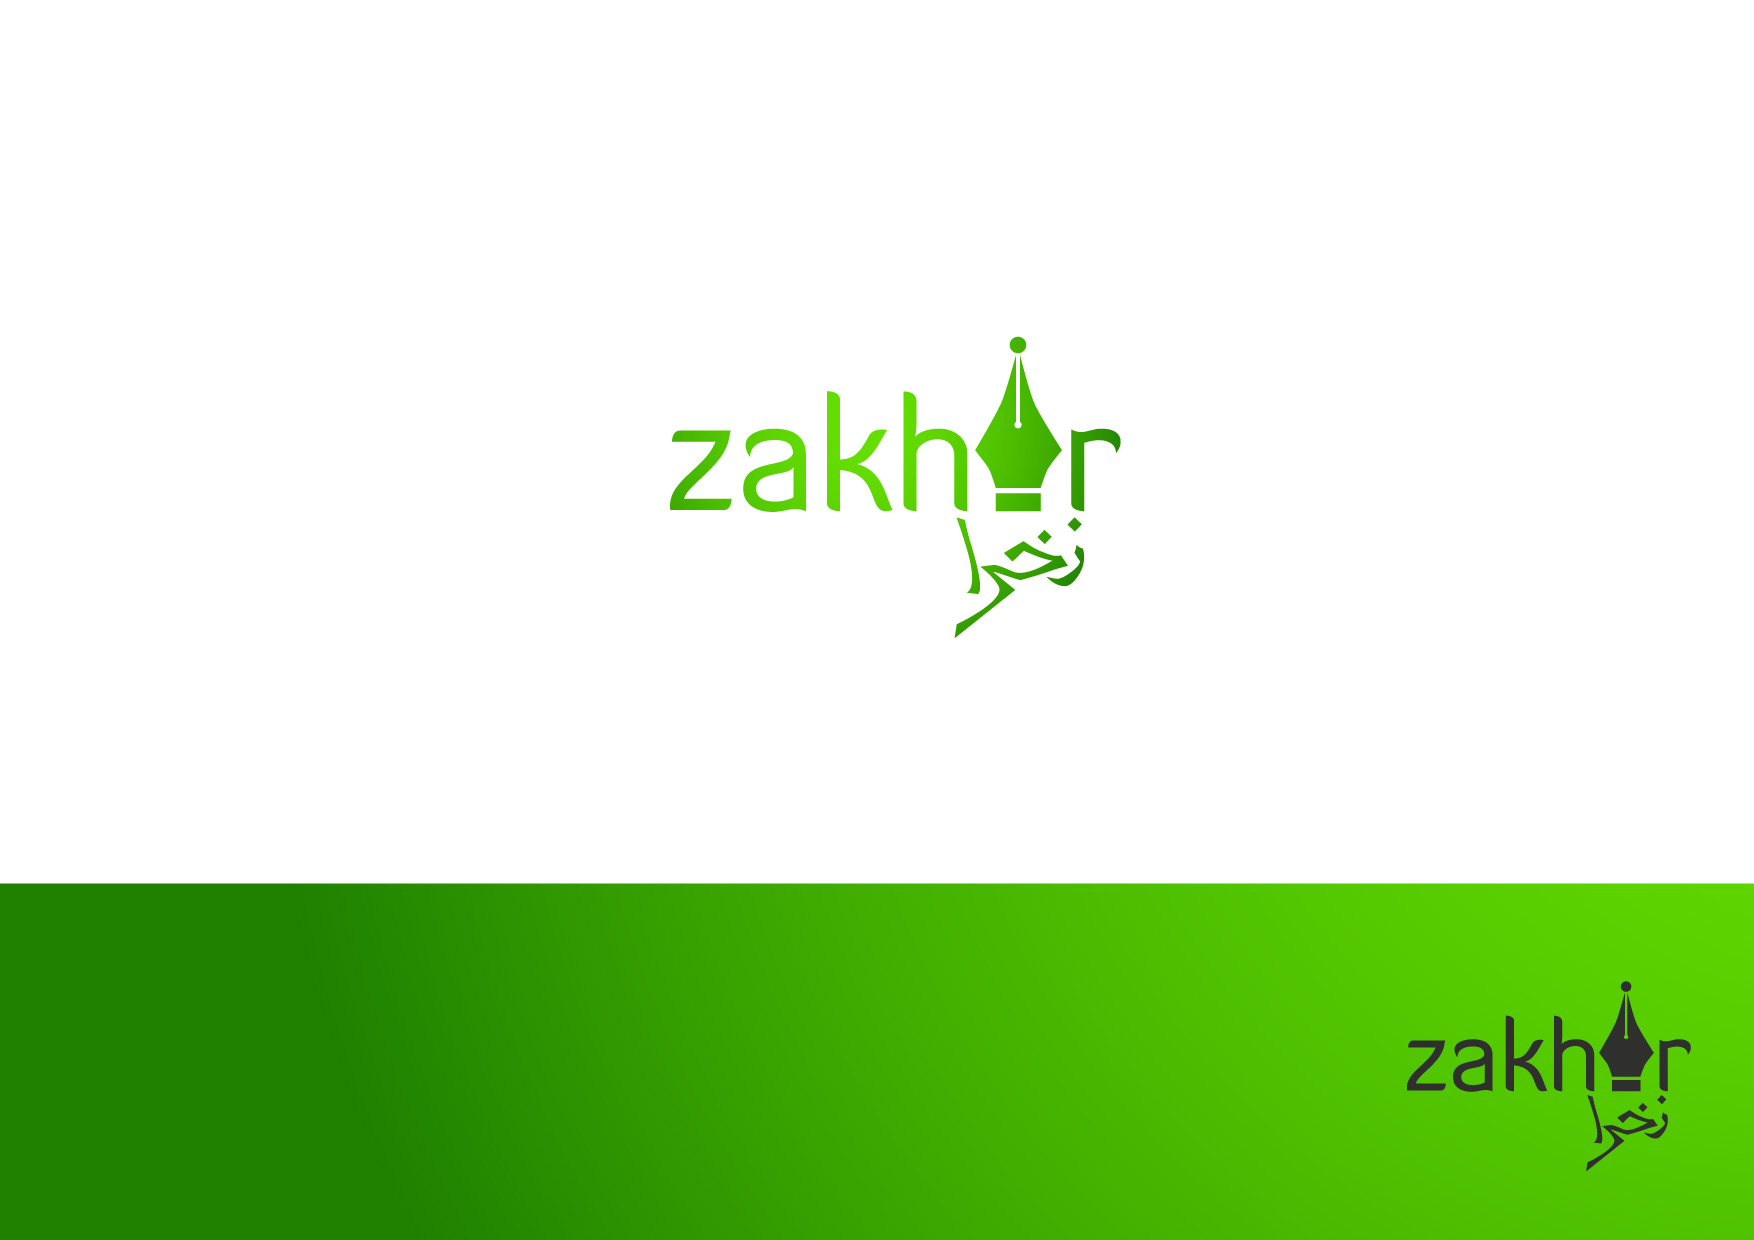 Logo Design by Osi Indra - Entry No. 13 in the Logo Design Contest Zakhir Logo Design.